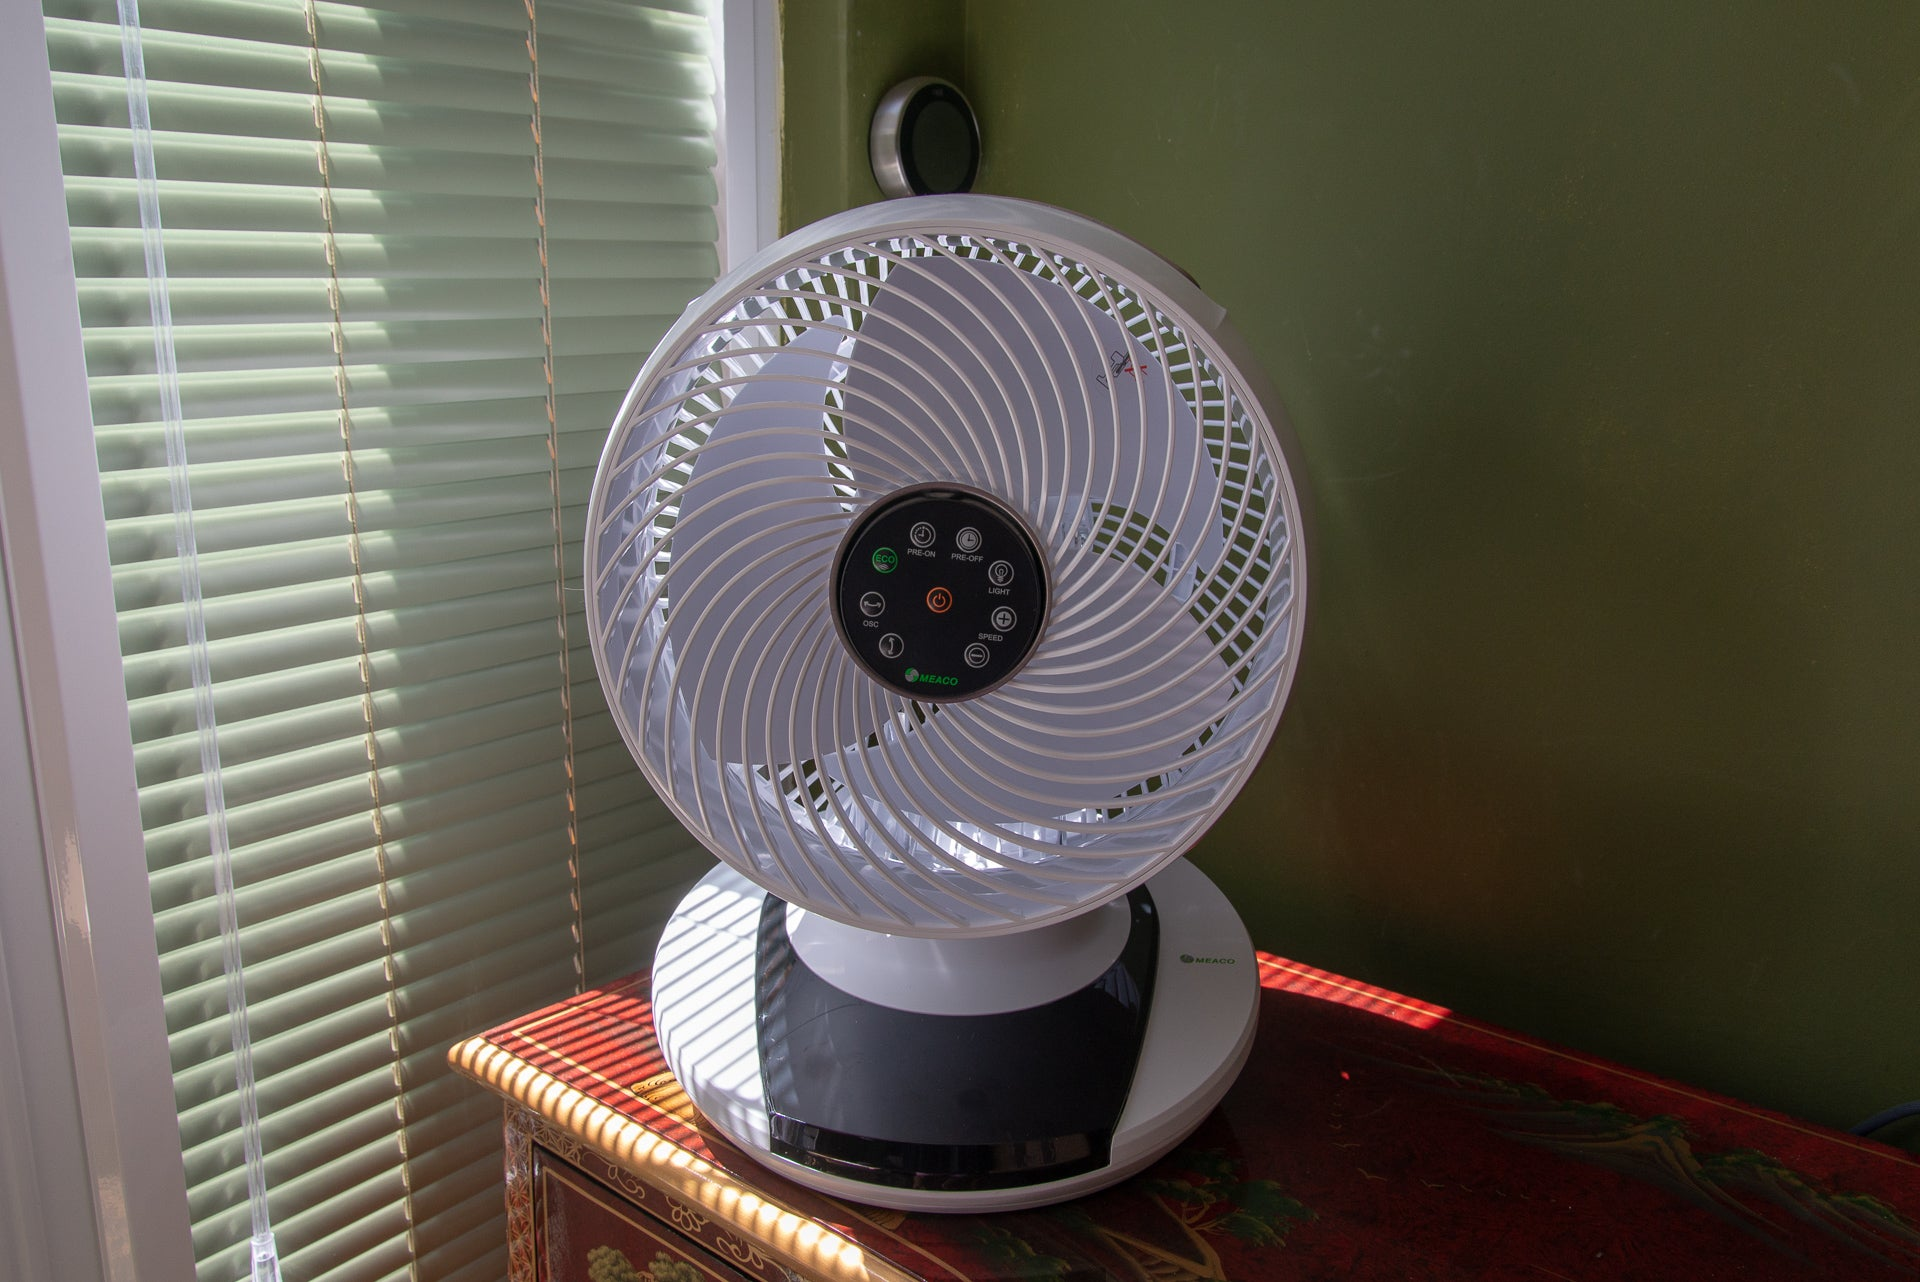 Best Fan 2019: Cooling and purifying fans to beat the heat